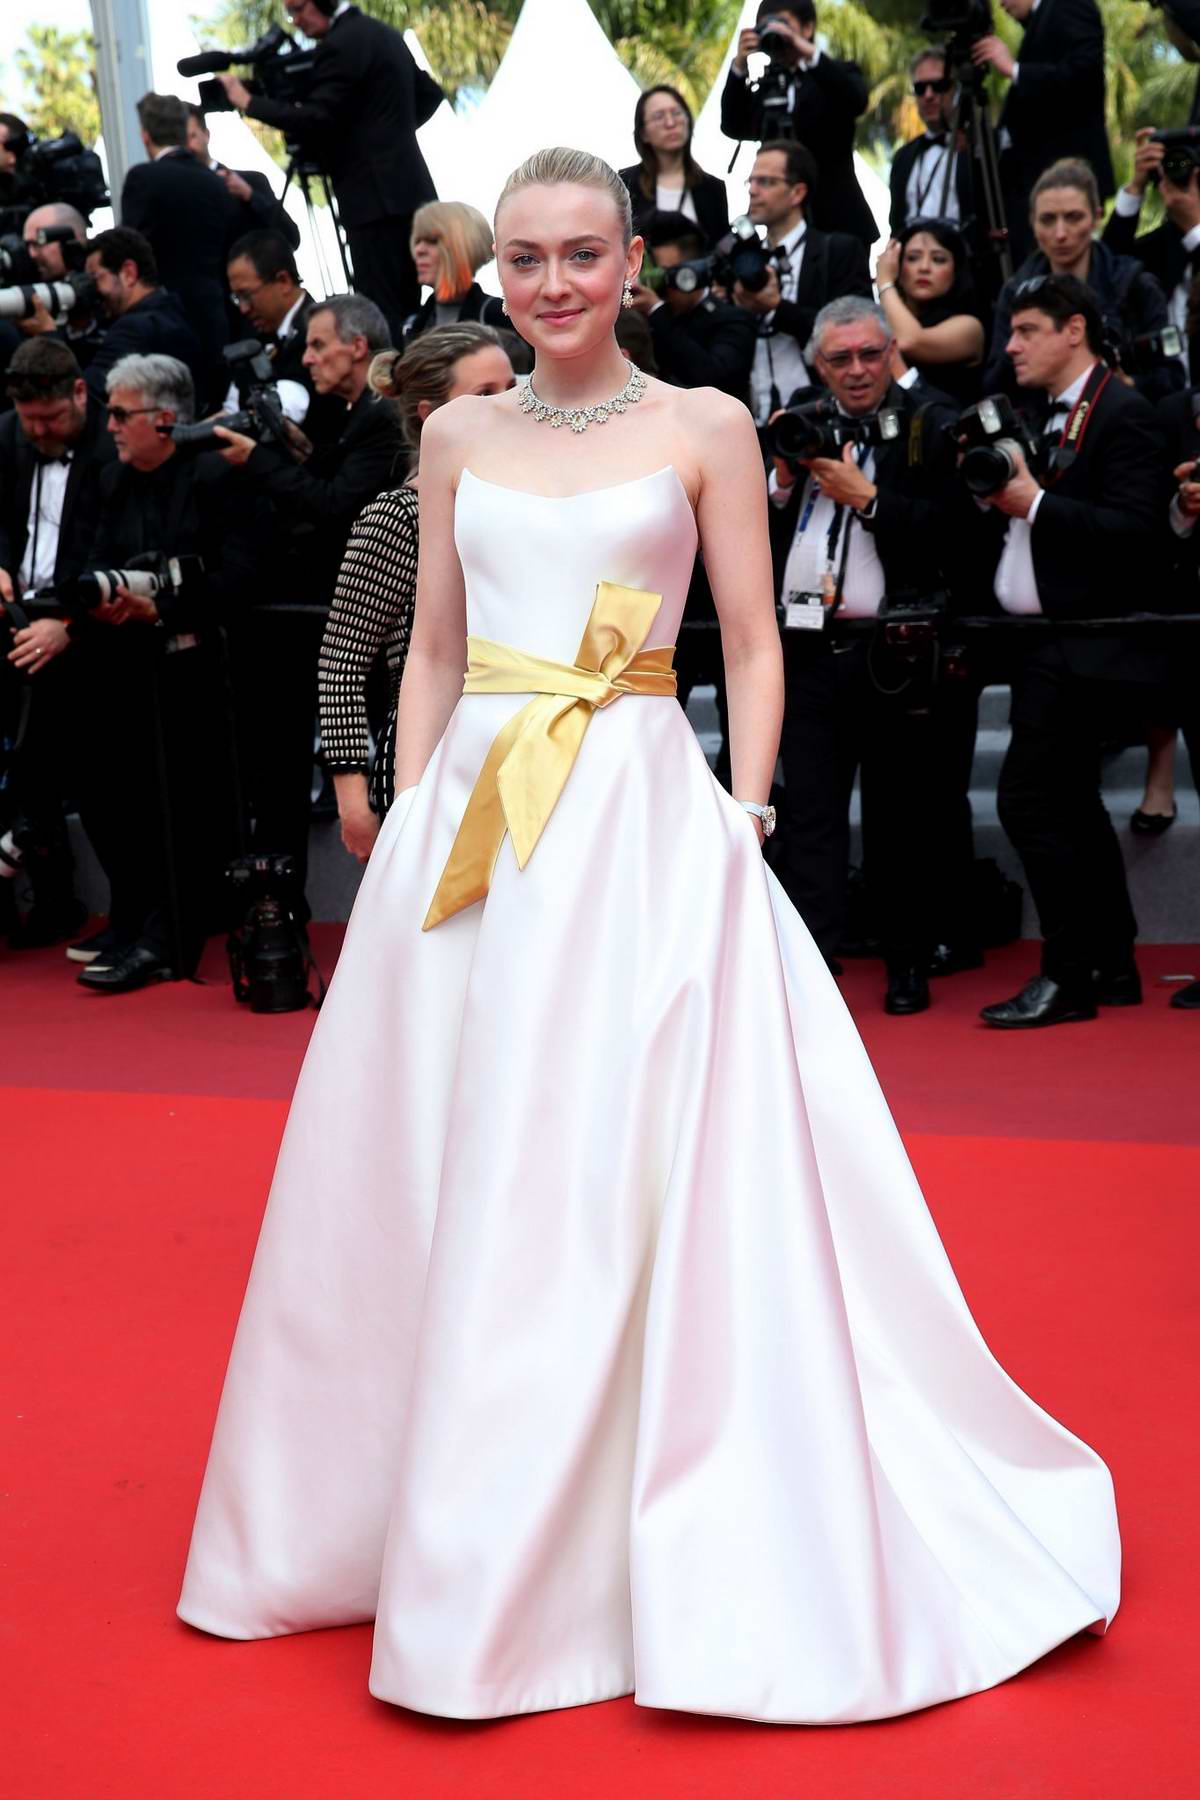 Dakota Fanning attends the screening of 'Once Upon A Time In Hollywood' during the 72nd annual Cannes Film Festival in Cannes, France